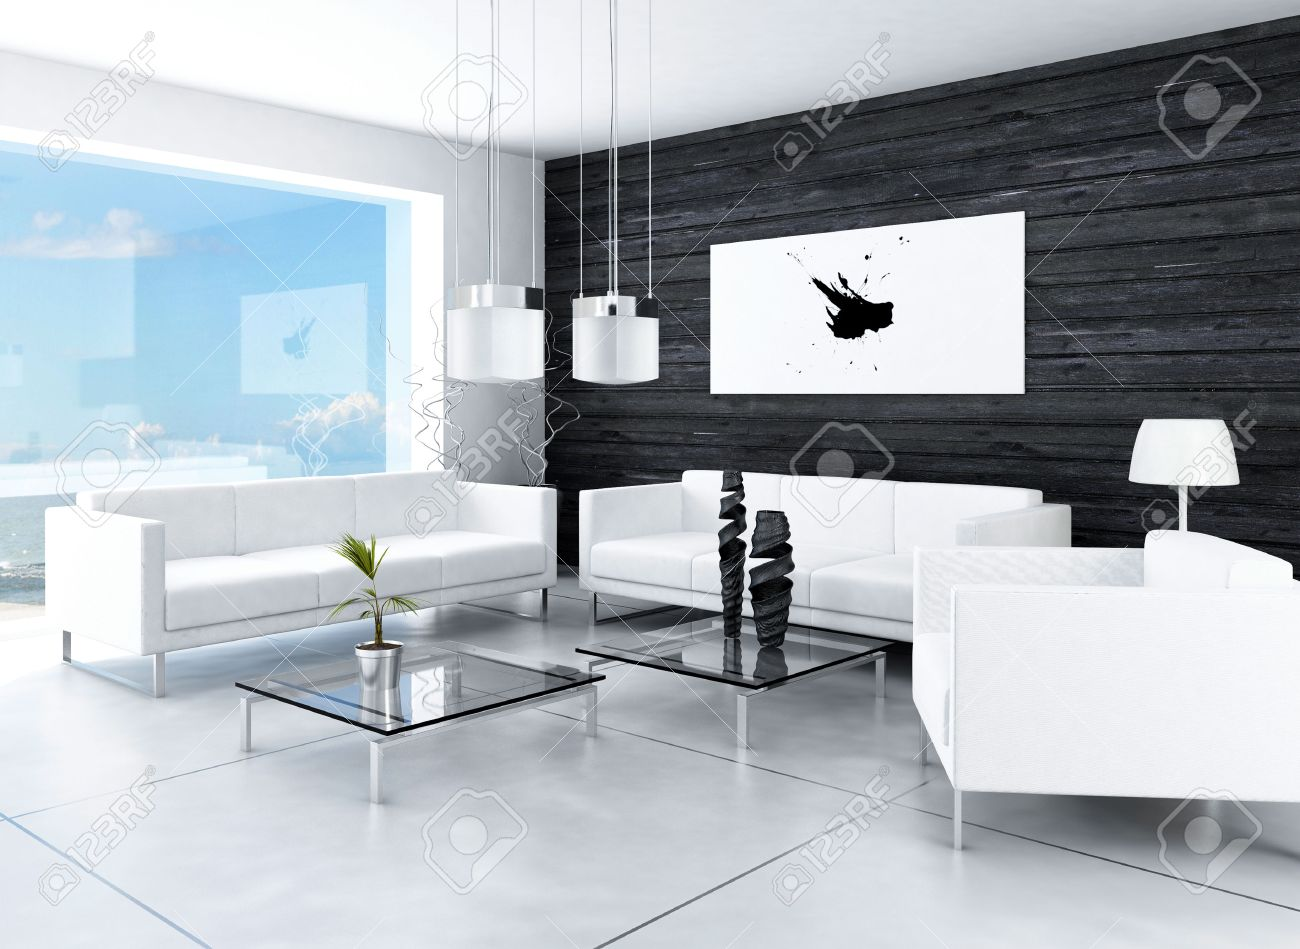 modern design black and white living room interior stock photo